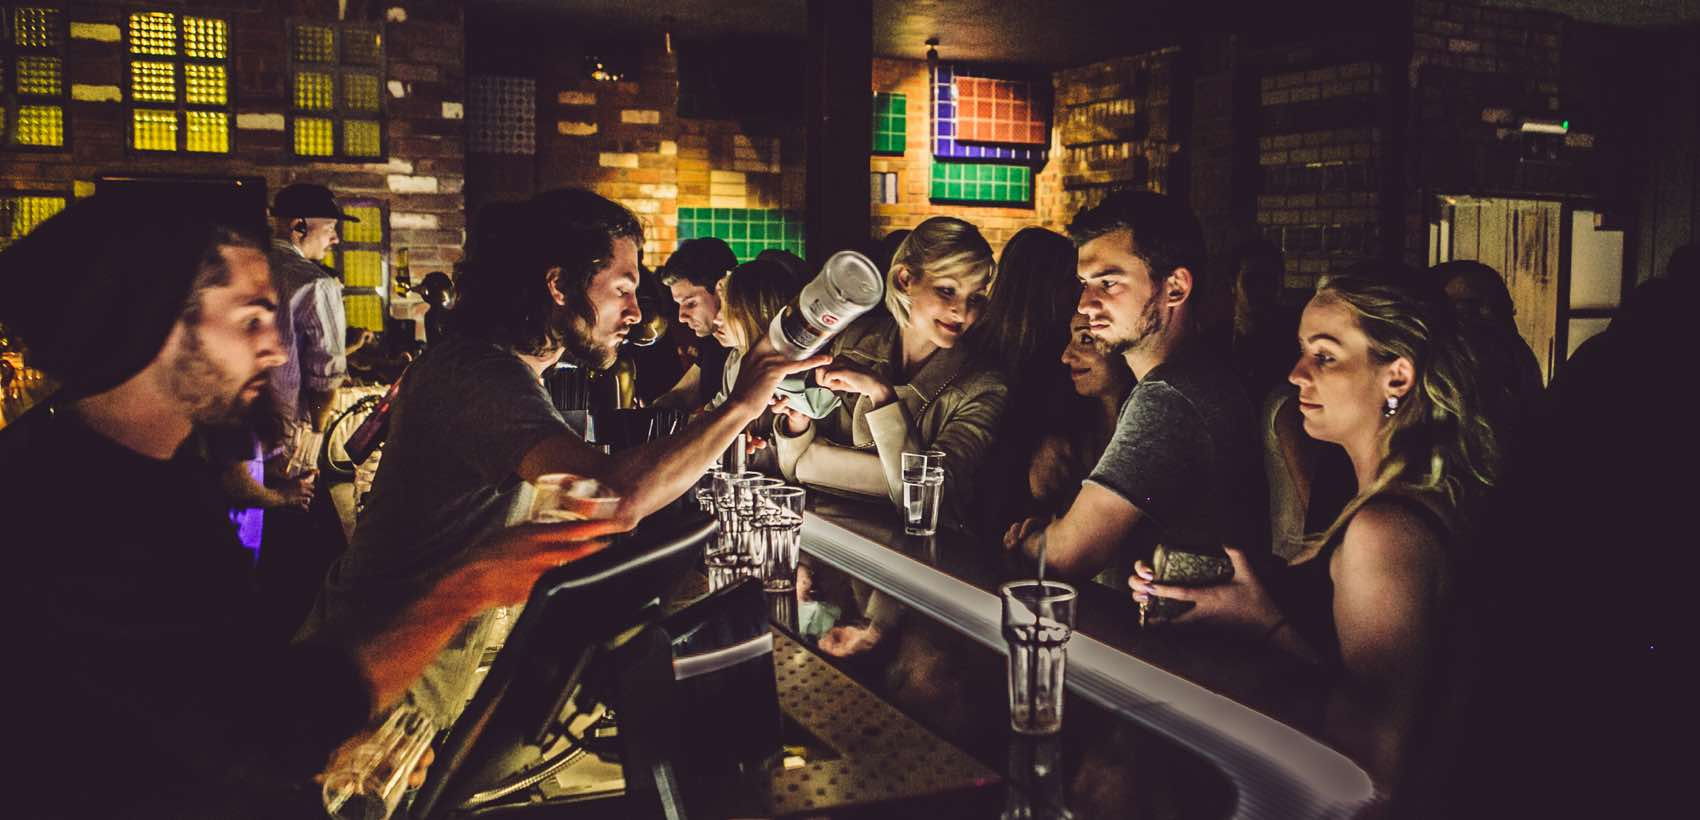 Bars and Pubs in London